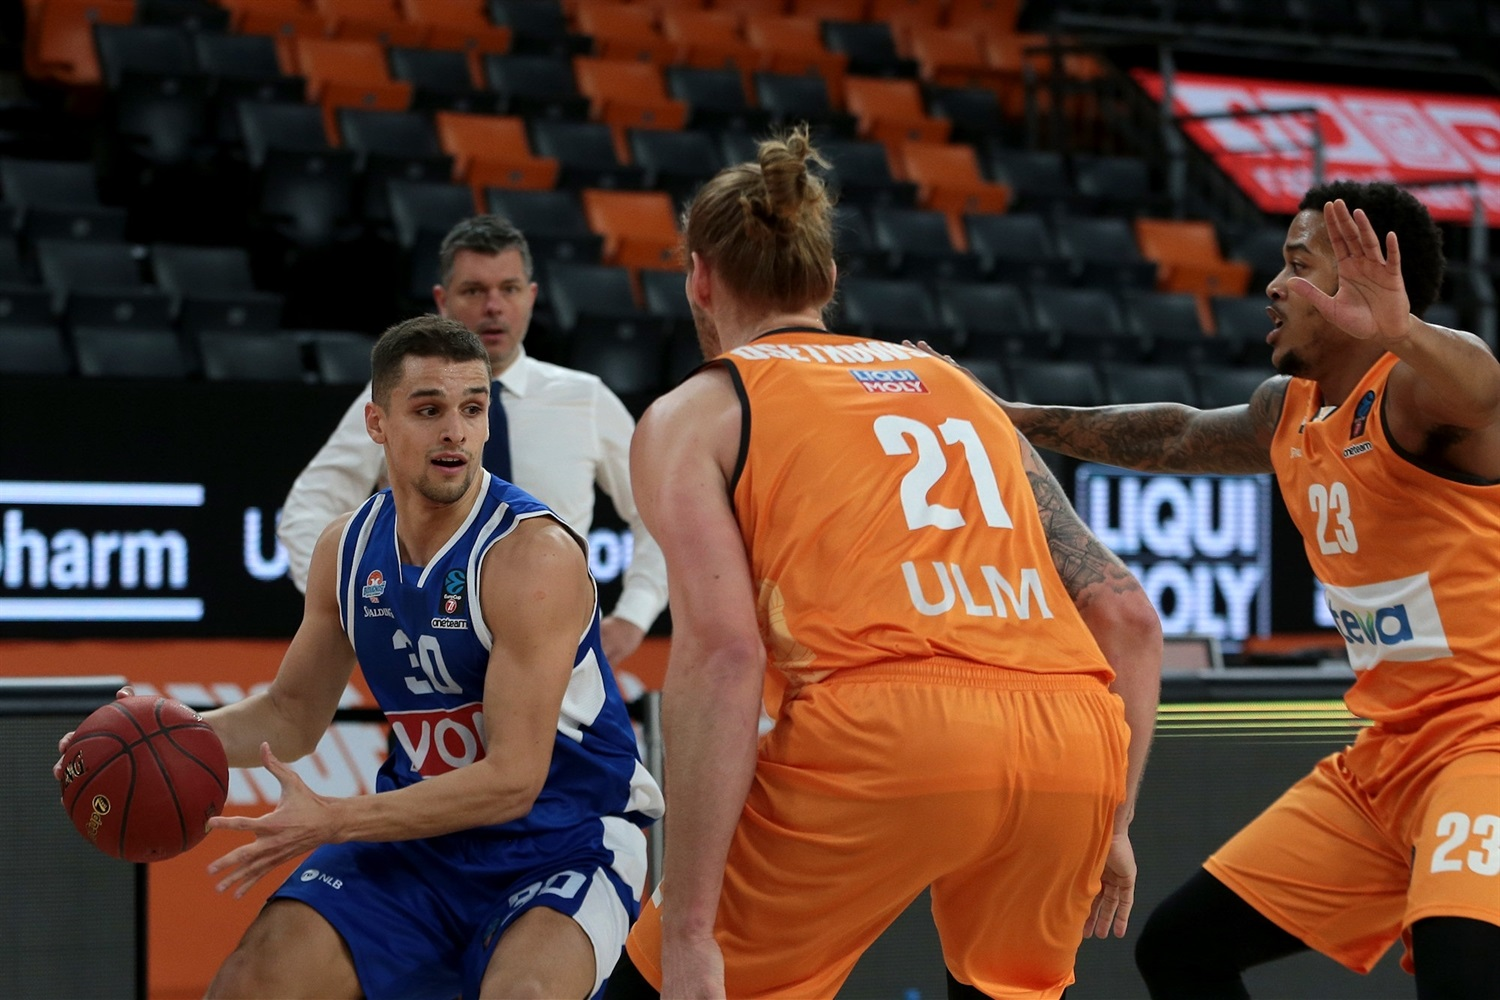 Petar Popovic - Buducnost Voli Podgorica (photo Ulm - Harry Langer) - EC20